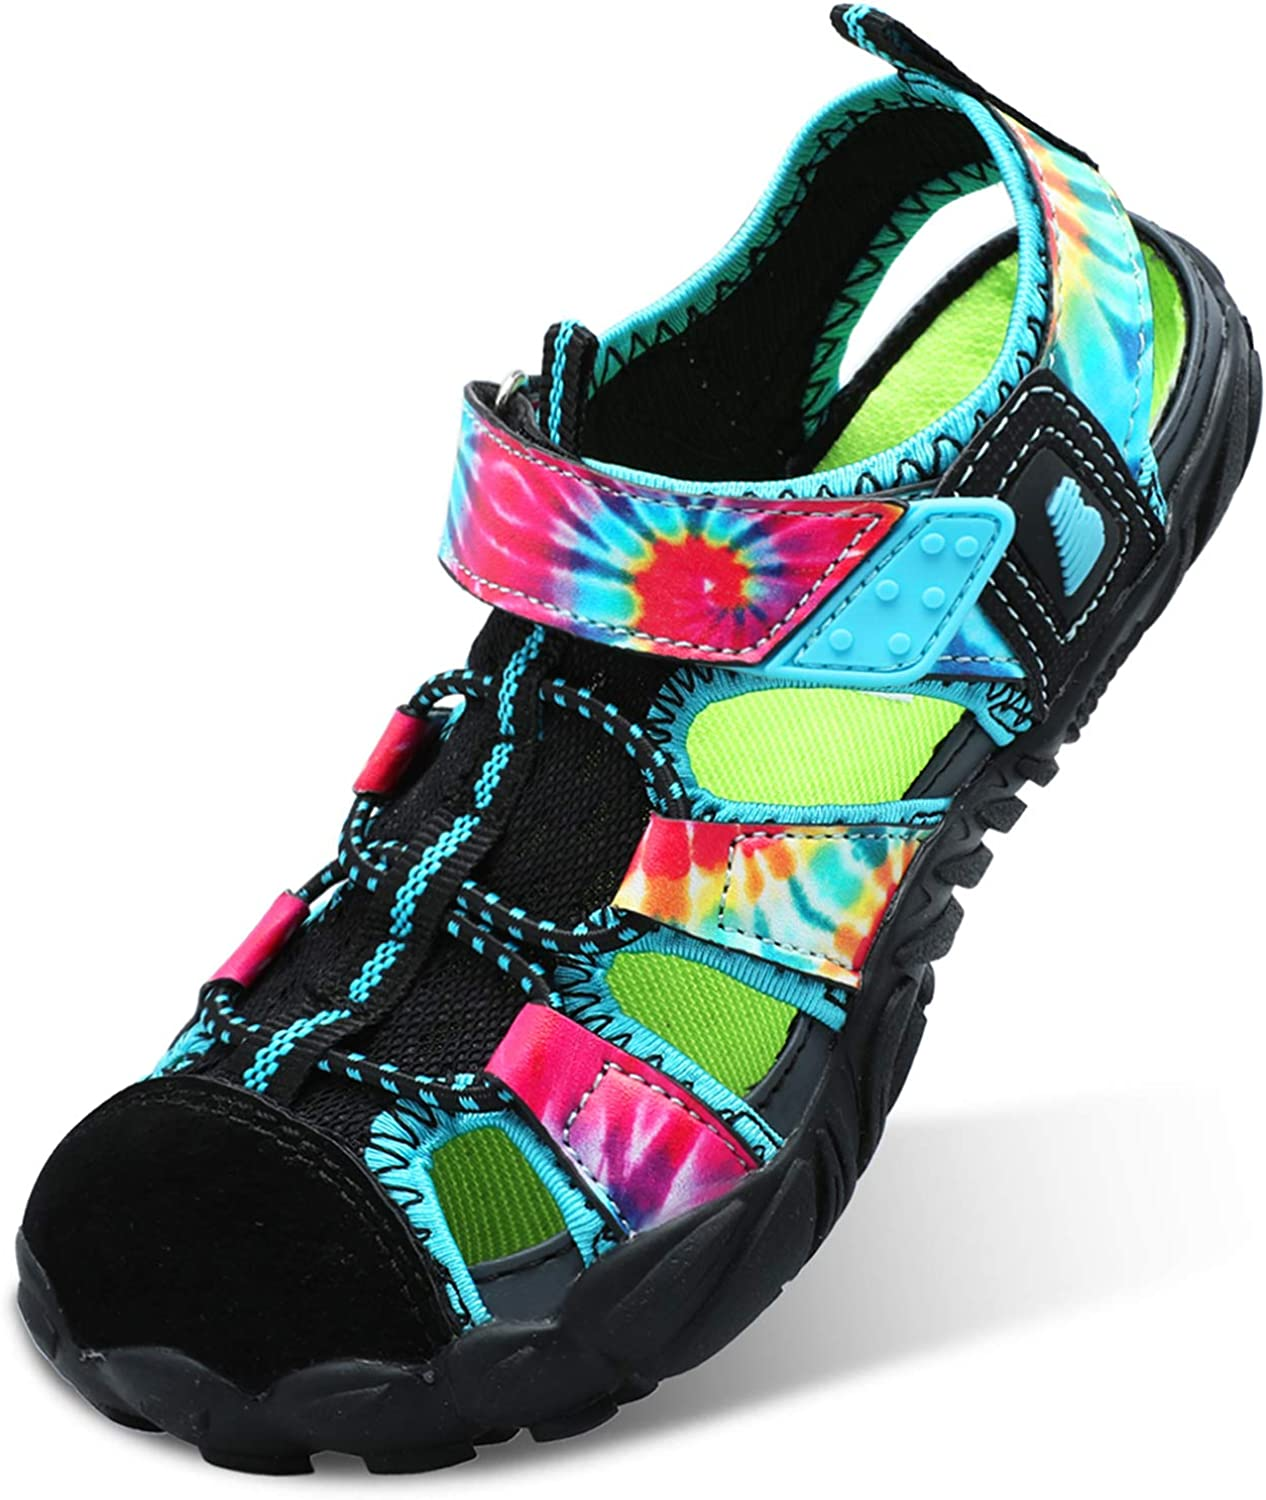 BARERUN Topics on TV Kids Water Shoes Boys Quick Girls quality assurance Athletic Barefoot Dry